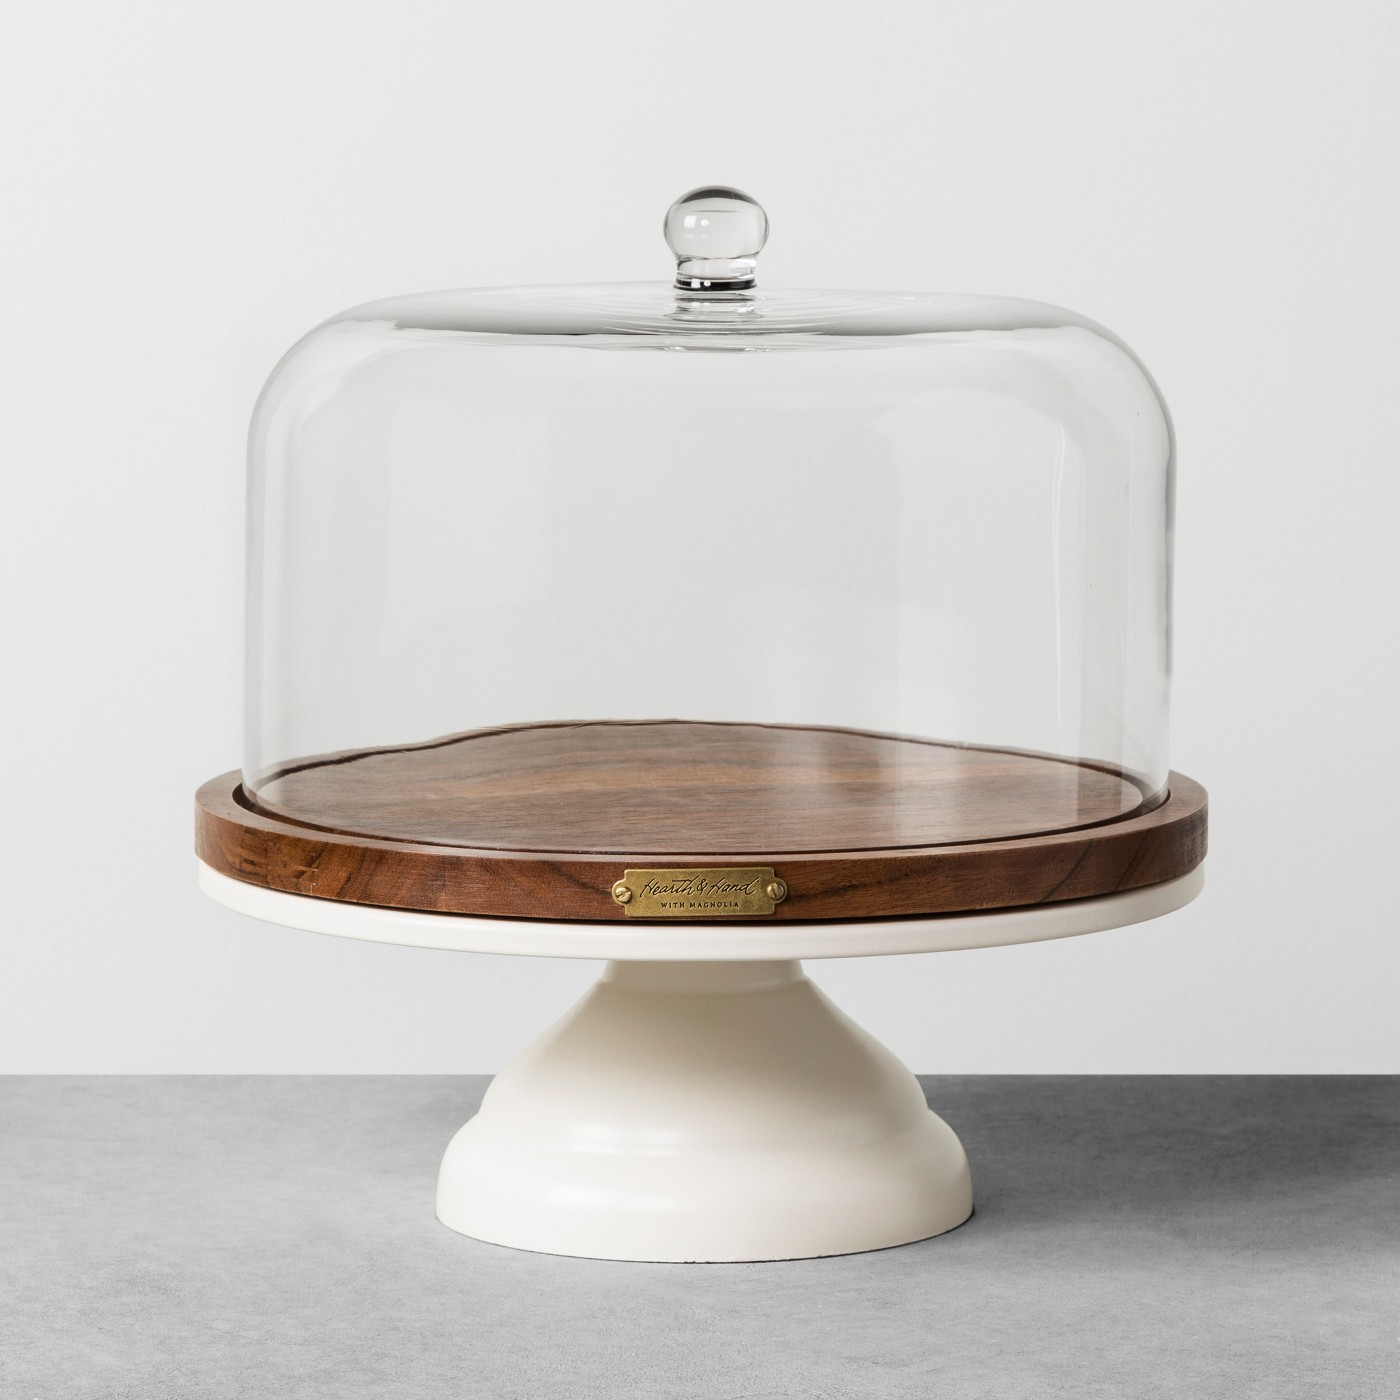 Hearth and Hand cake stand